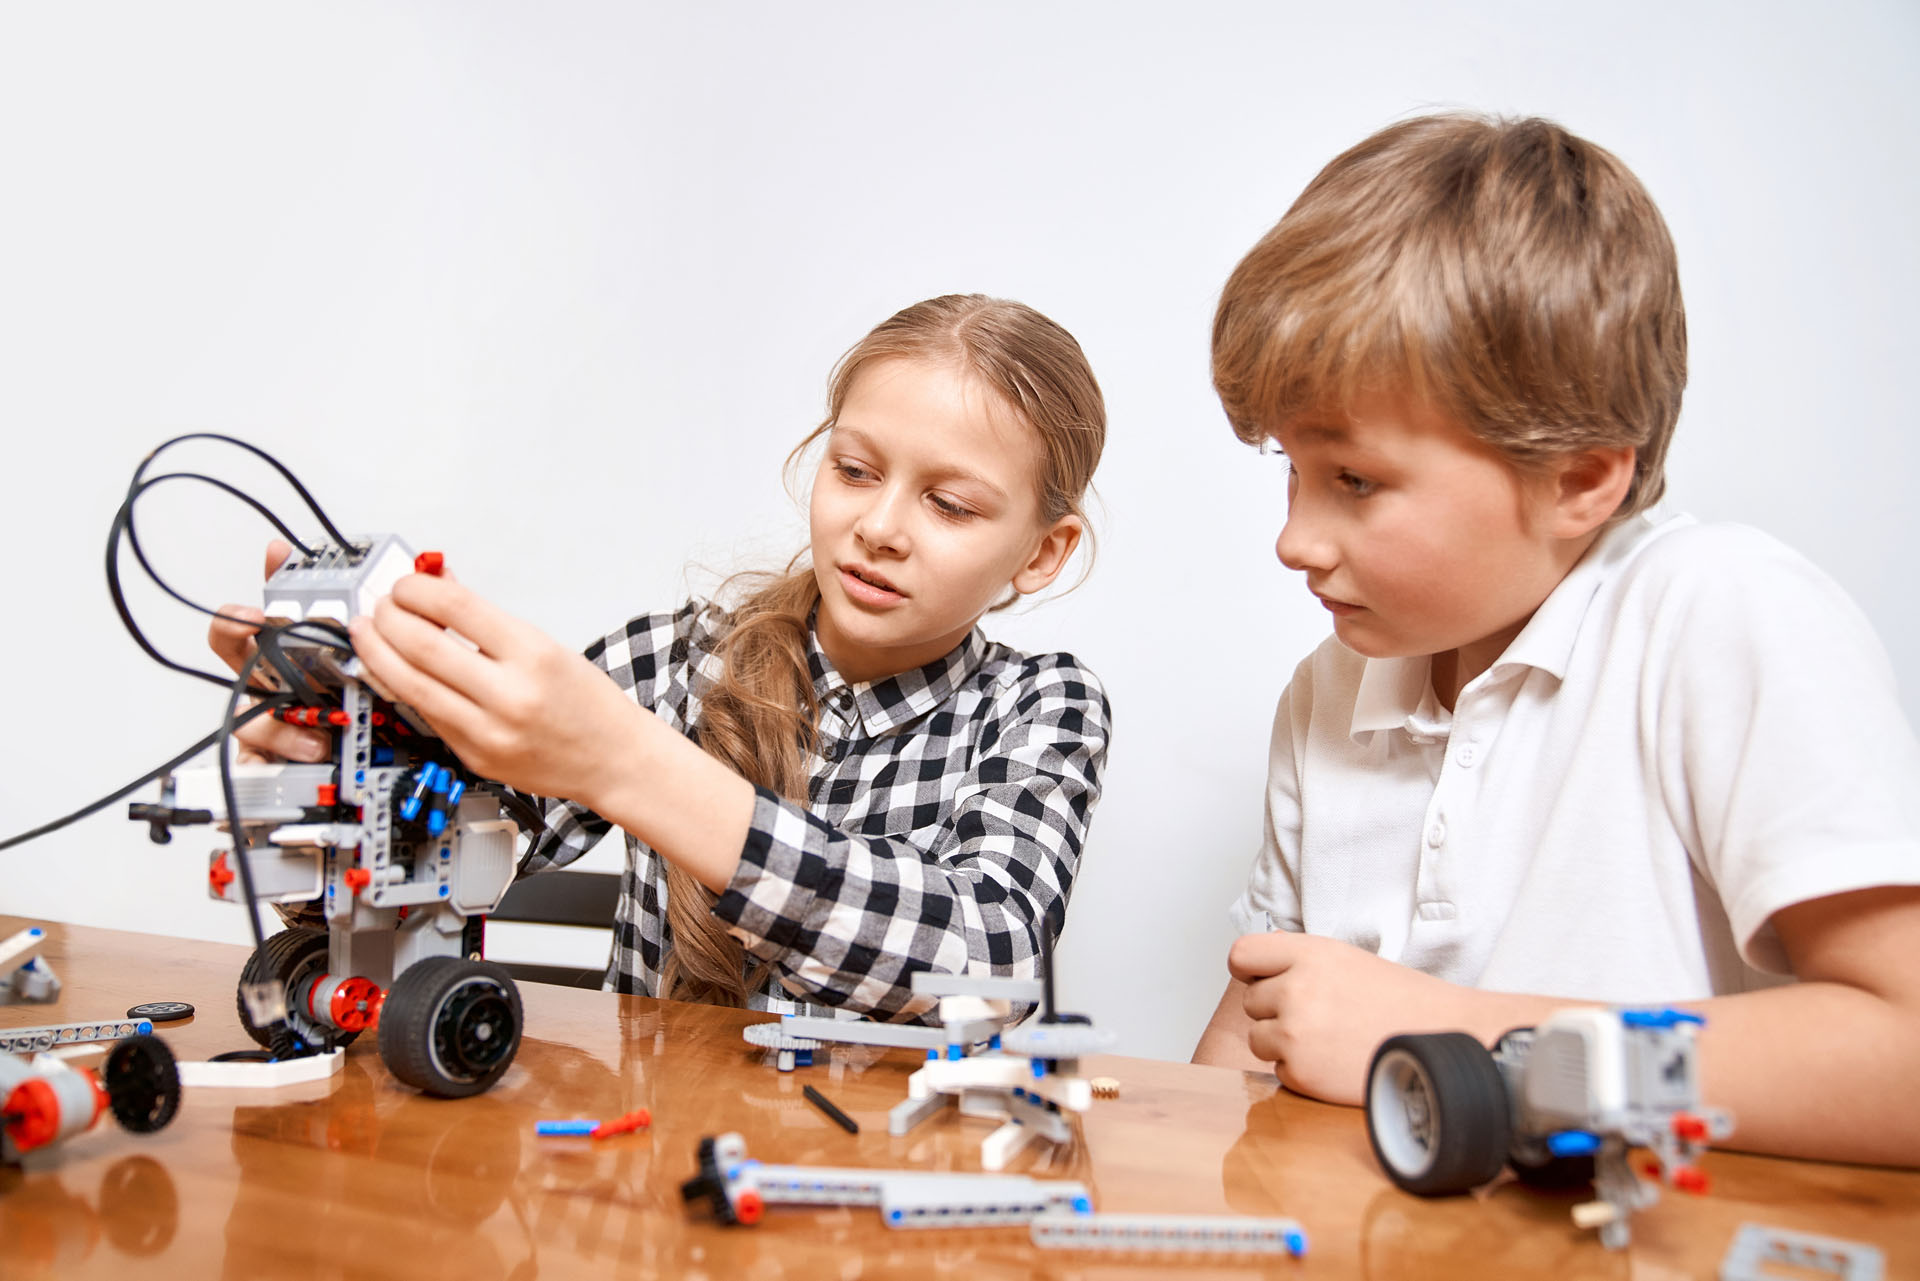 Front,View,Of,Boy,Helping,Girl,In,Creating,Robot,Using